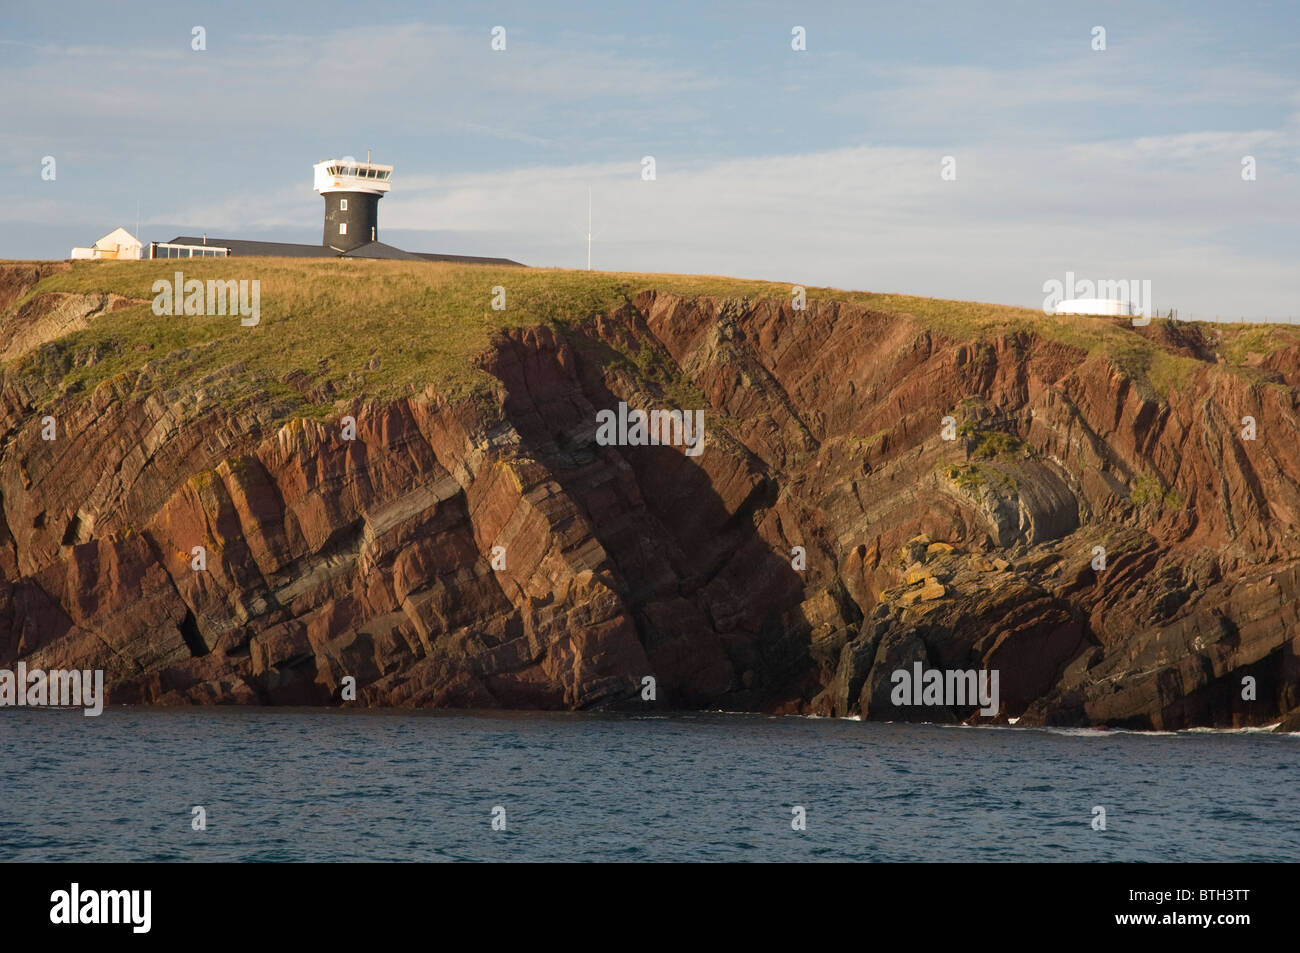 Old Red Sandstone folds in cliff, St. Anne's Head, Pembrokeshire, Wales, UK, Europe - Stock Image